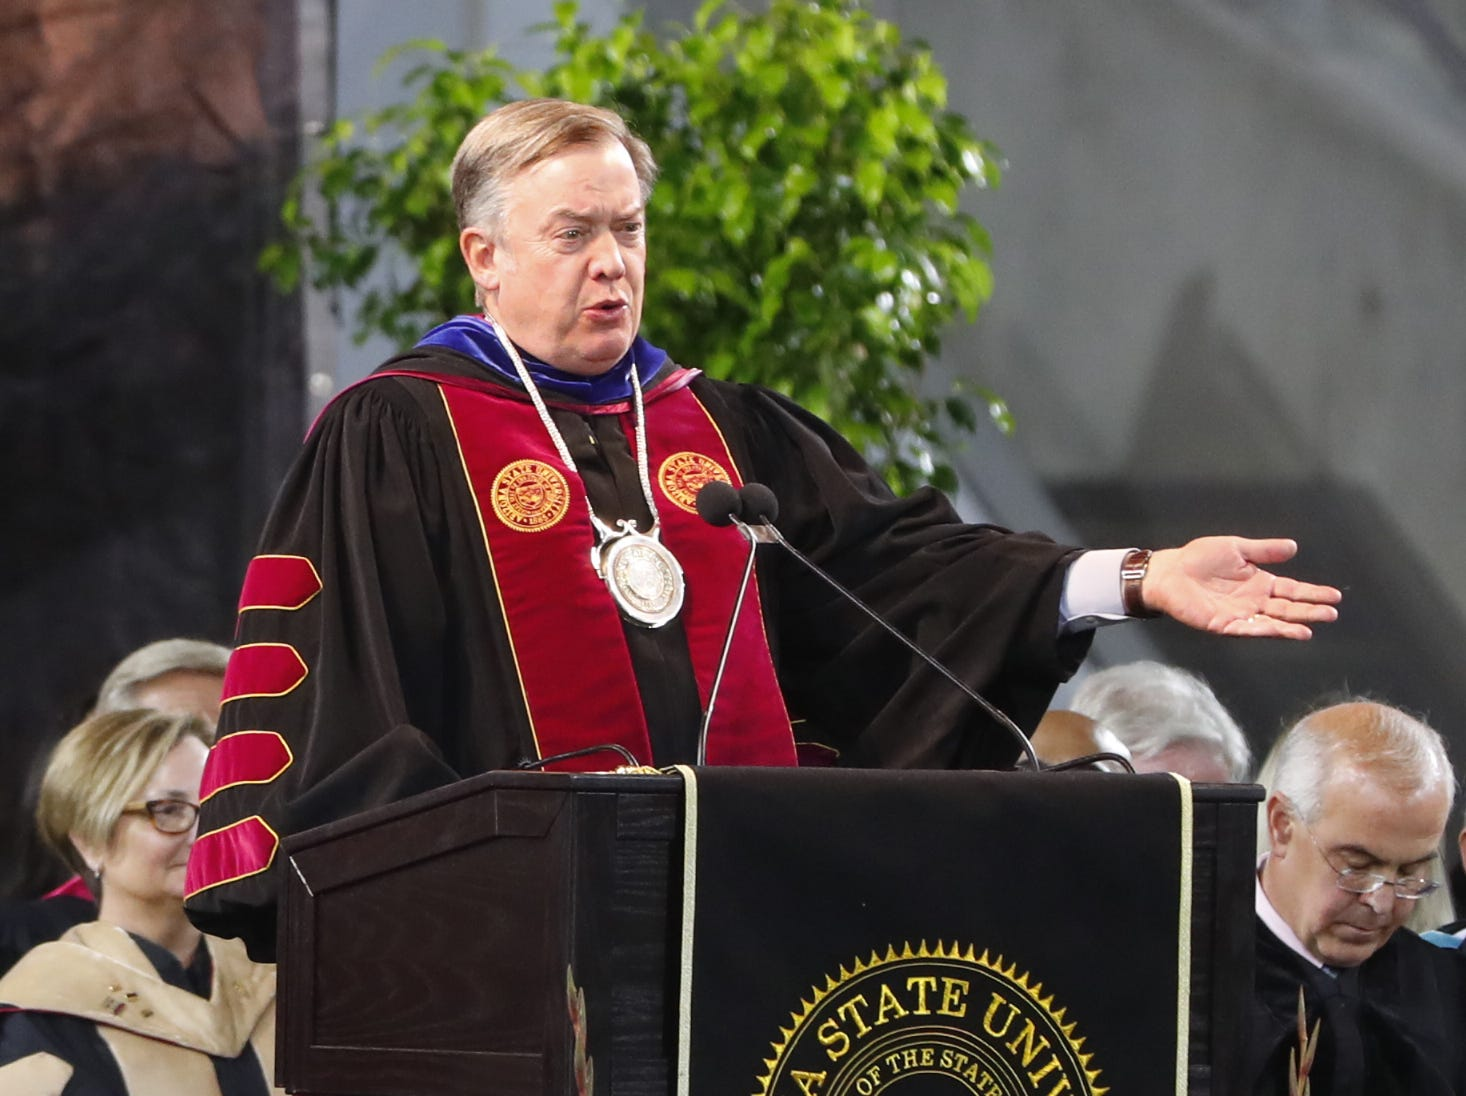 ASU President Michael Crow speaks during ASU's Undergraduate Commencement at Sun Devil Stadium in Tempe, Ariz. on May 6, 2019.